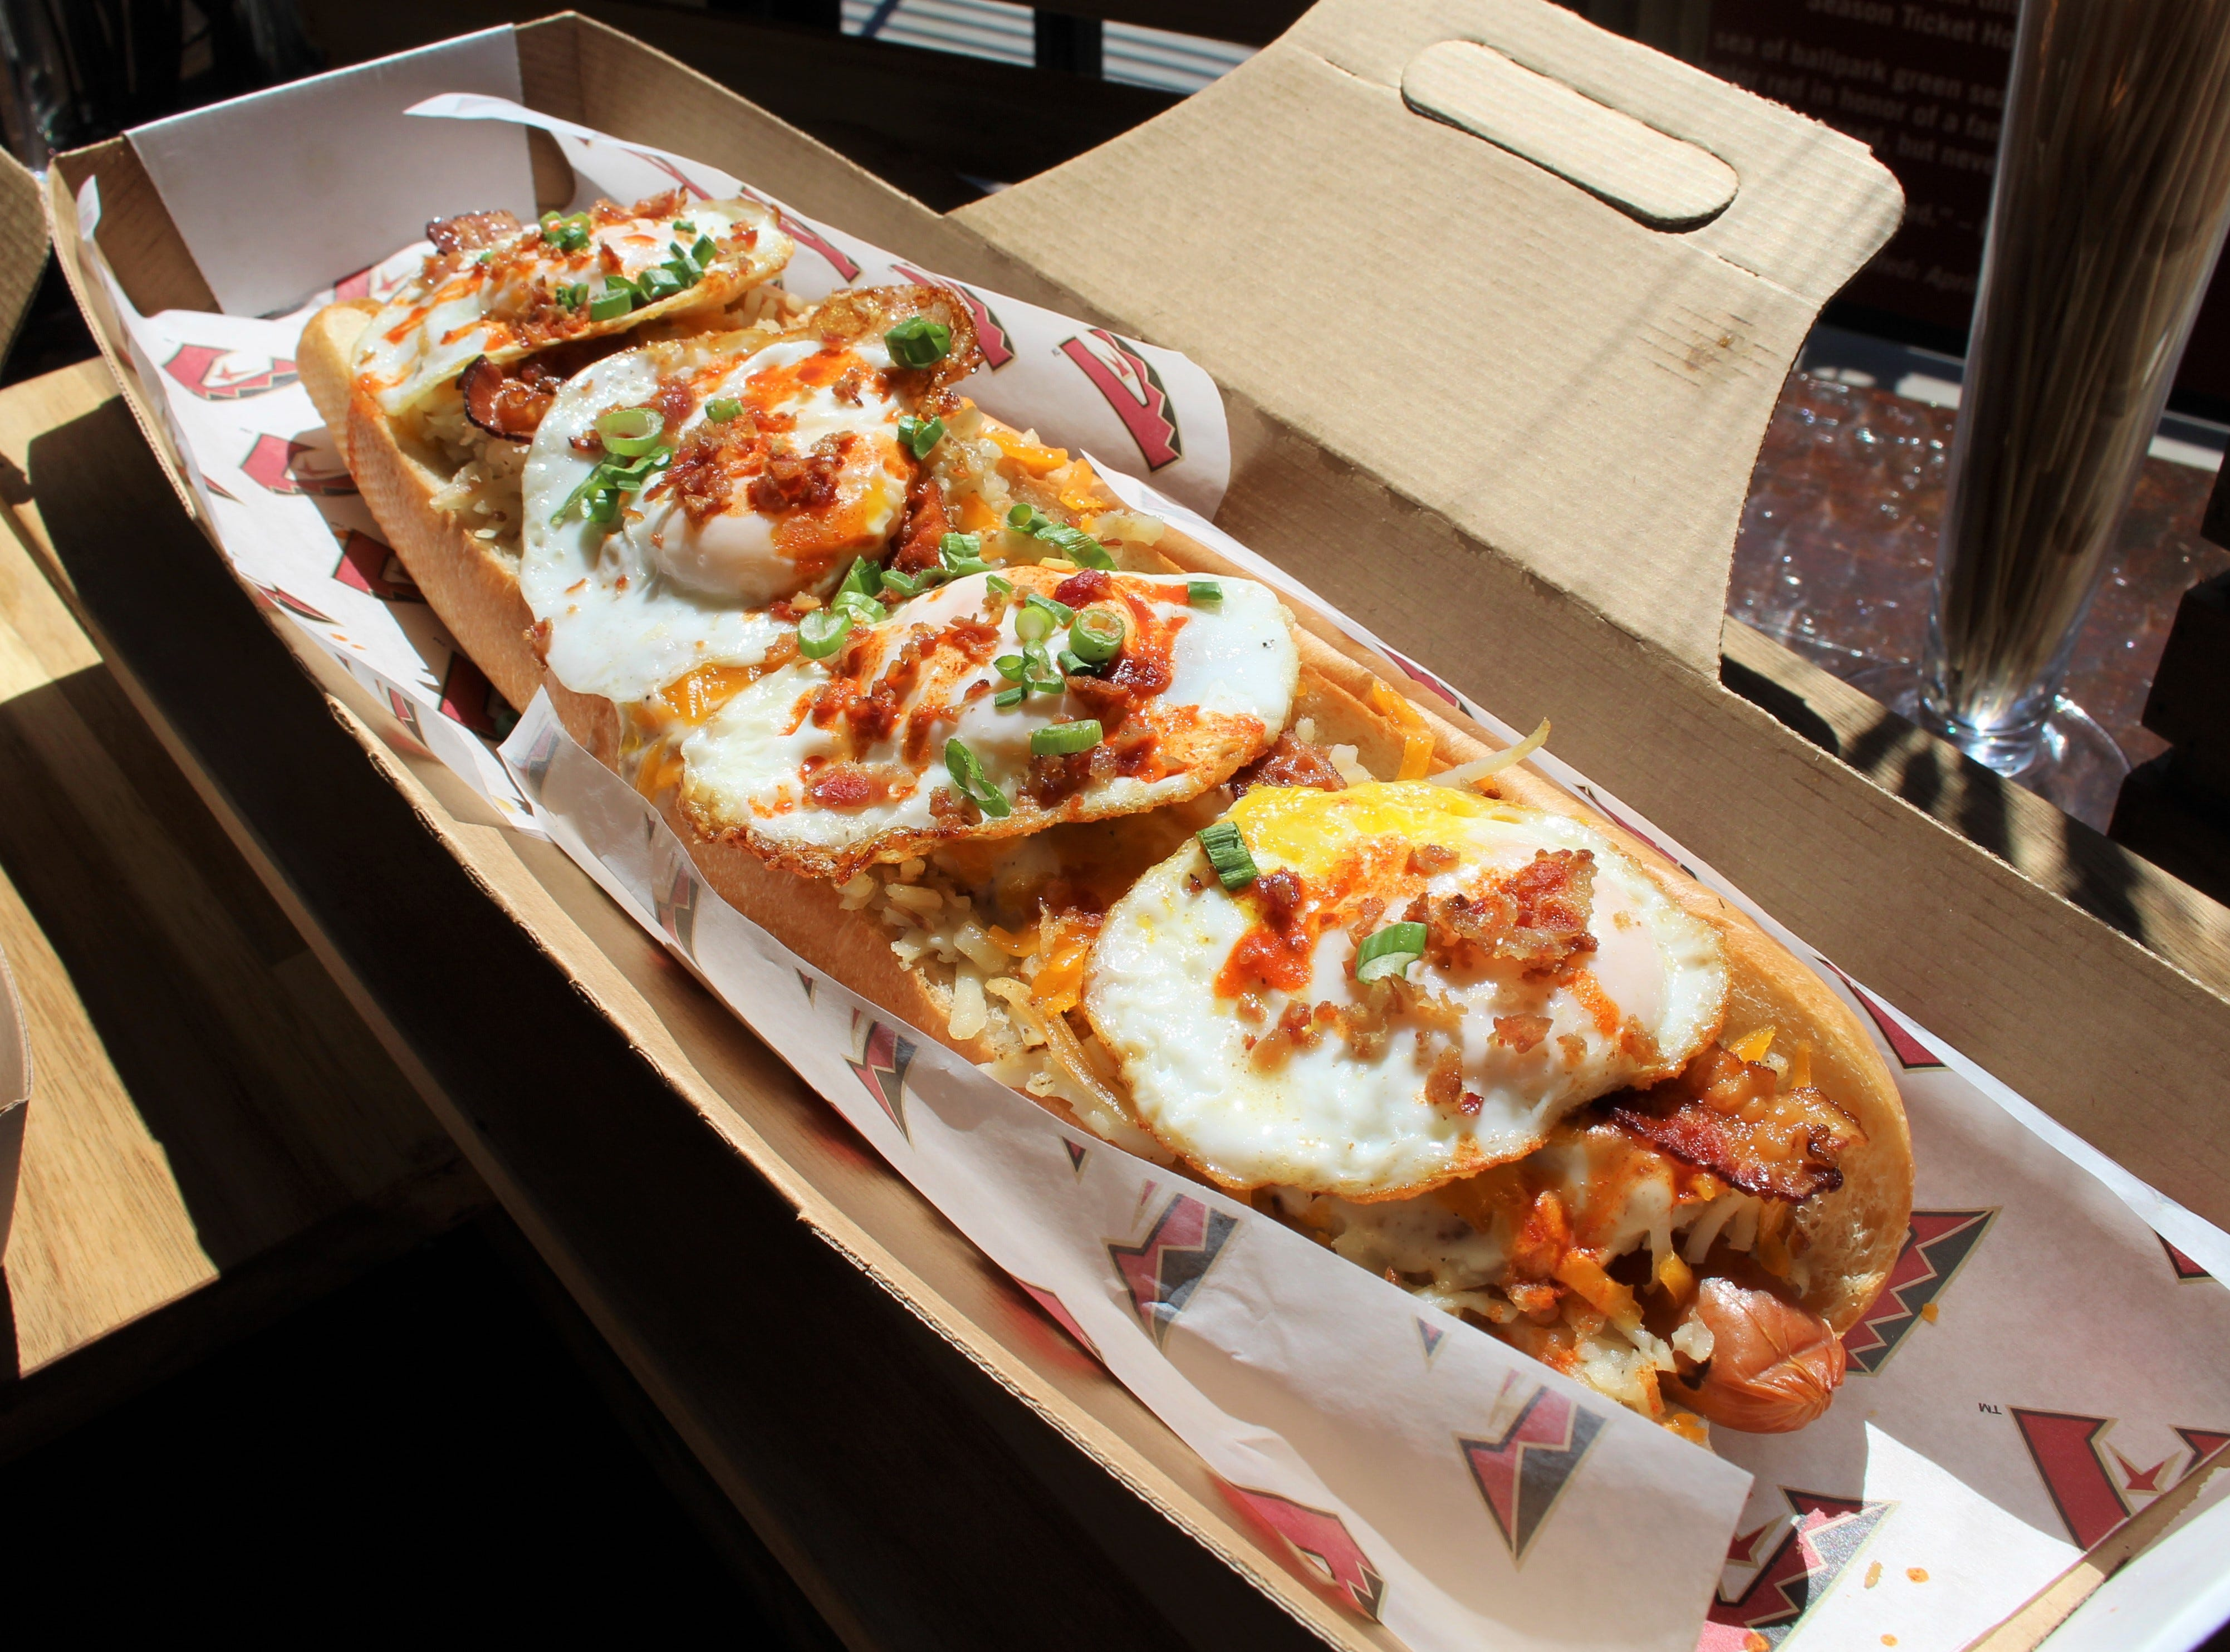 New to Chase Field: The All Day Breakfast Dog made with an 18-inch Schreiner's hot dog topped with hash browns, country gravy, Cheddar cheese, bacon, fried eggs, Tapatío hot sauce and green onion. Available for $30 in April and May only at Big Dawgs.